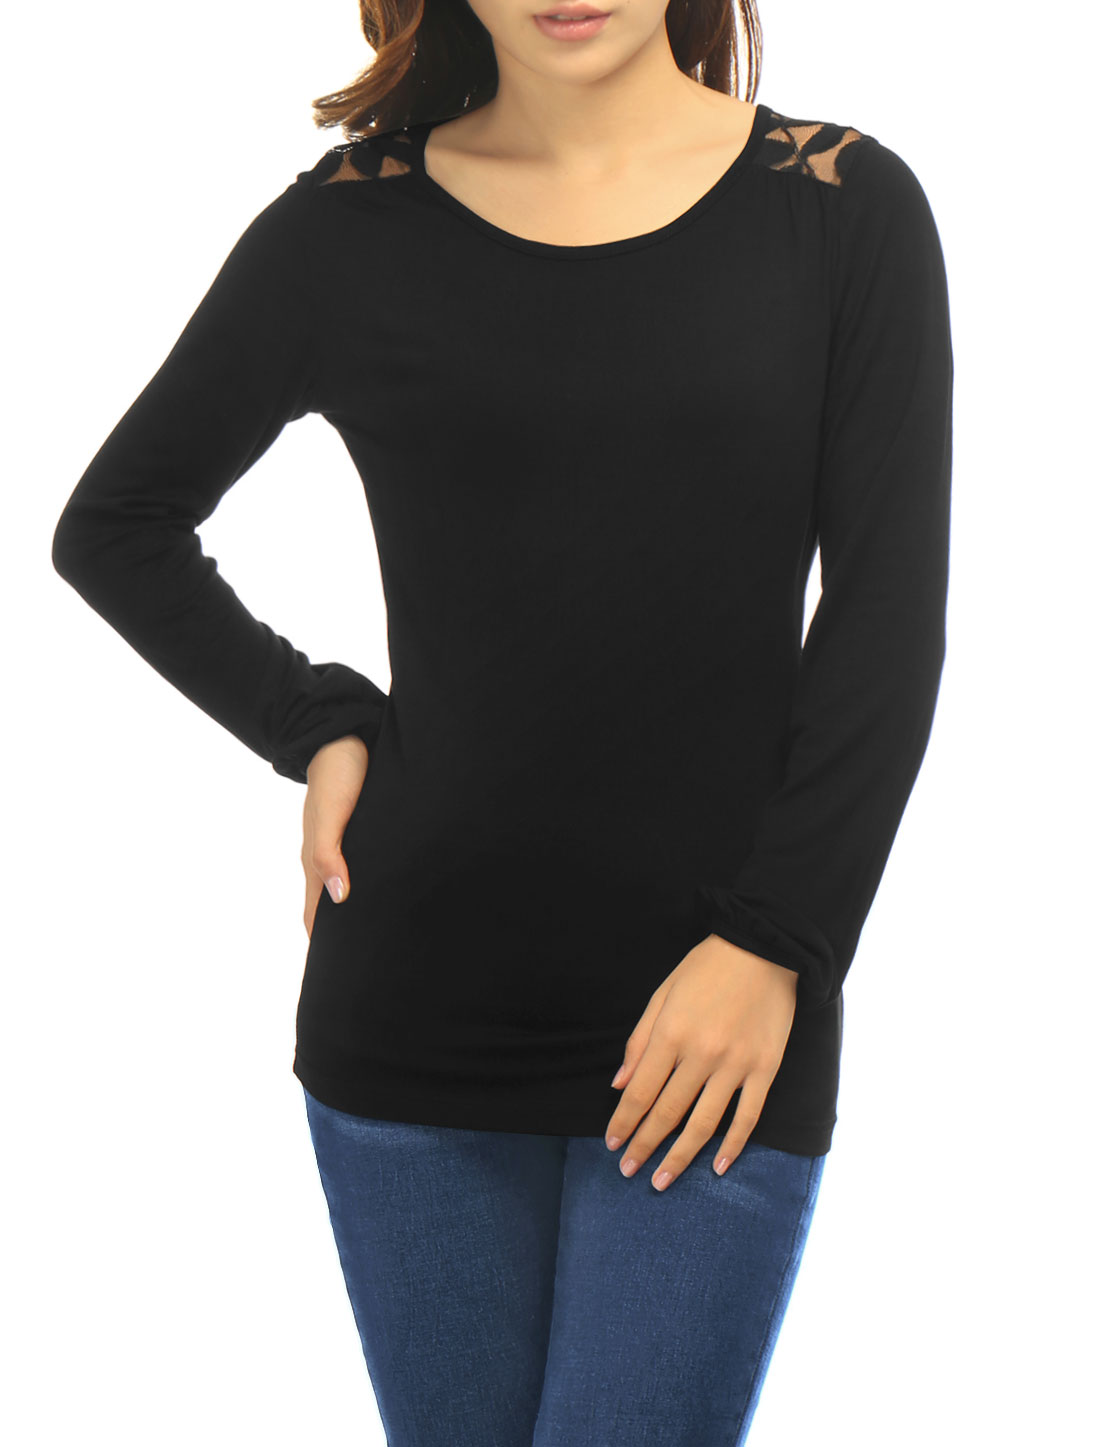 Allegra K Woman Long Sleeves Scoop Neck Lace Panel Back Top Black M